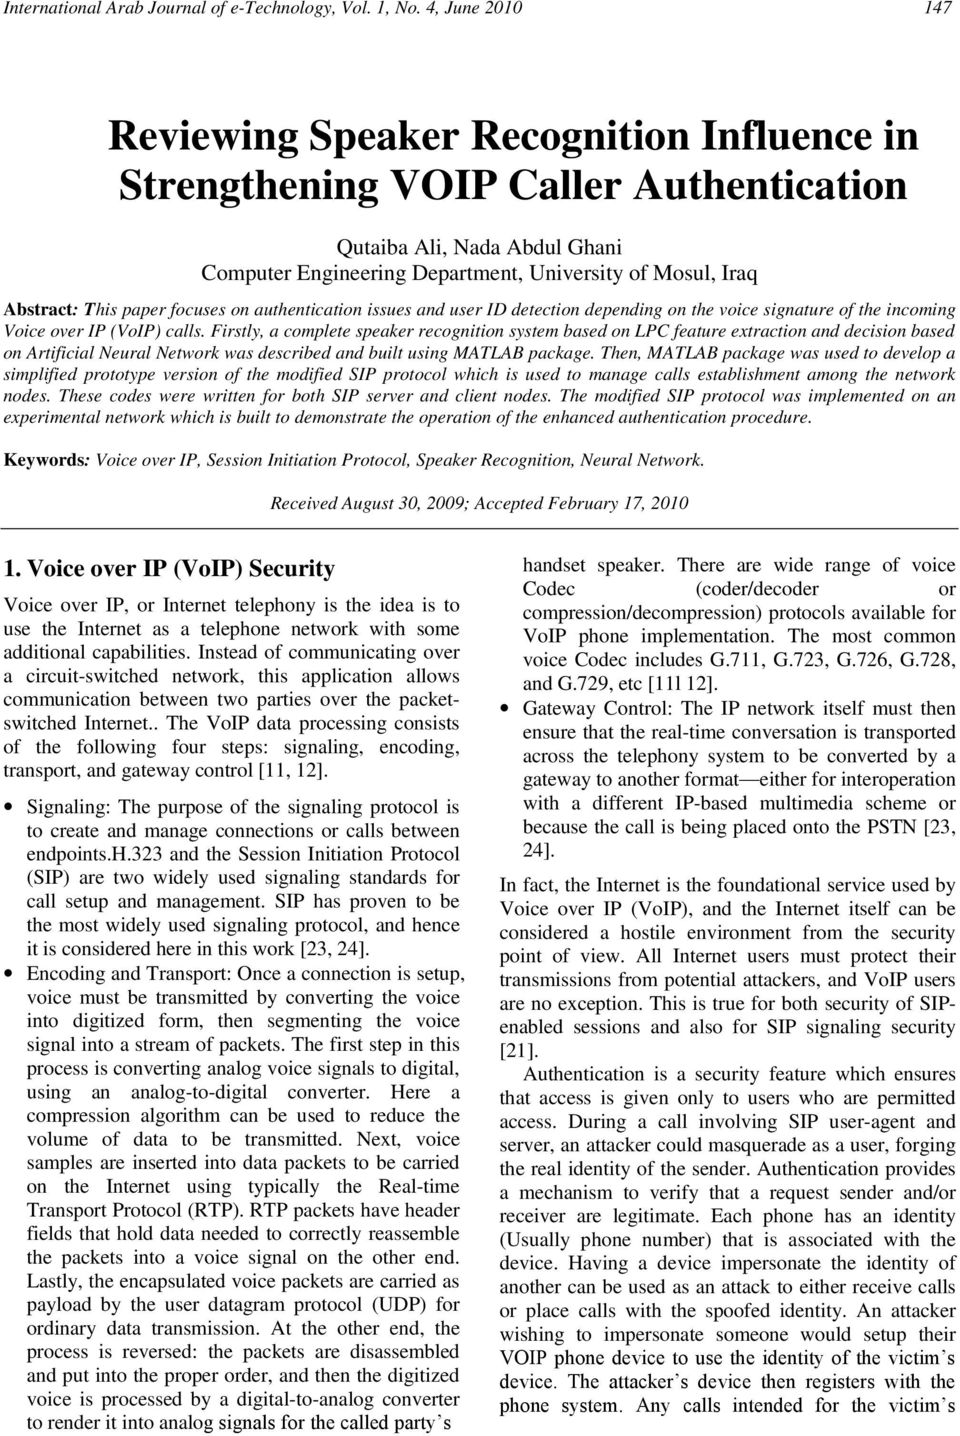 This paper focuses on authentication issues and user ID detection depending on the voice signature of the incoming Voice over IP (VoIP) calls.